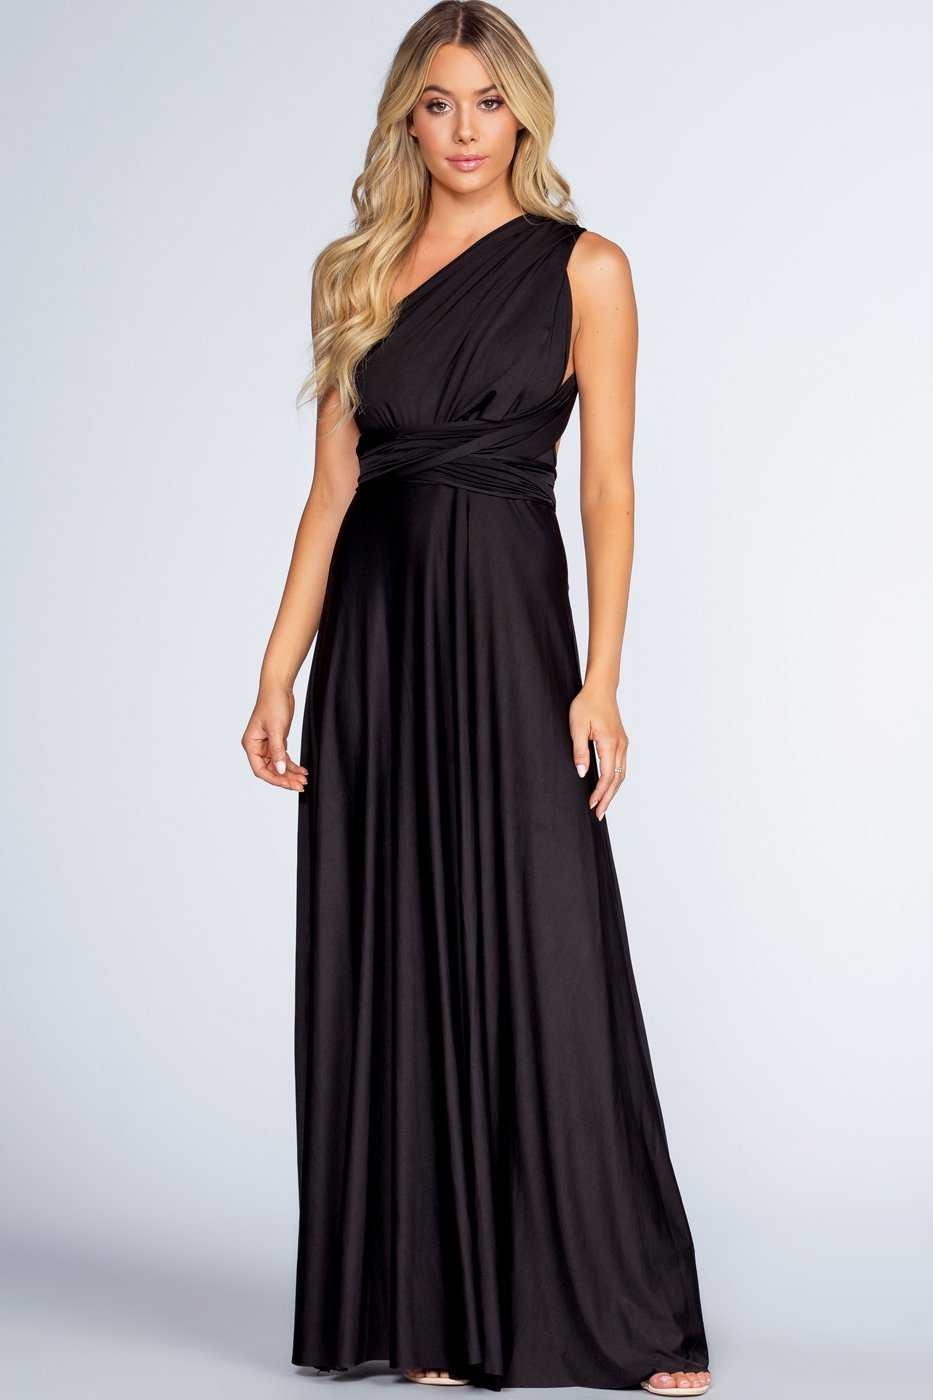 Dresses - Clarita Maxi Dress - Black